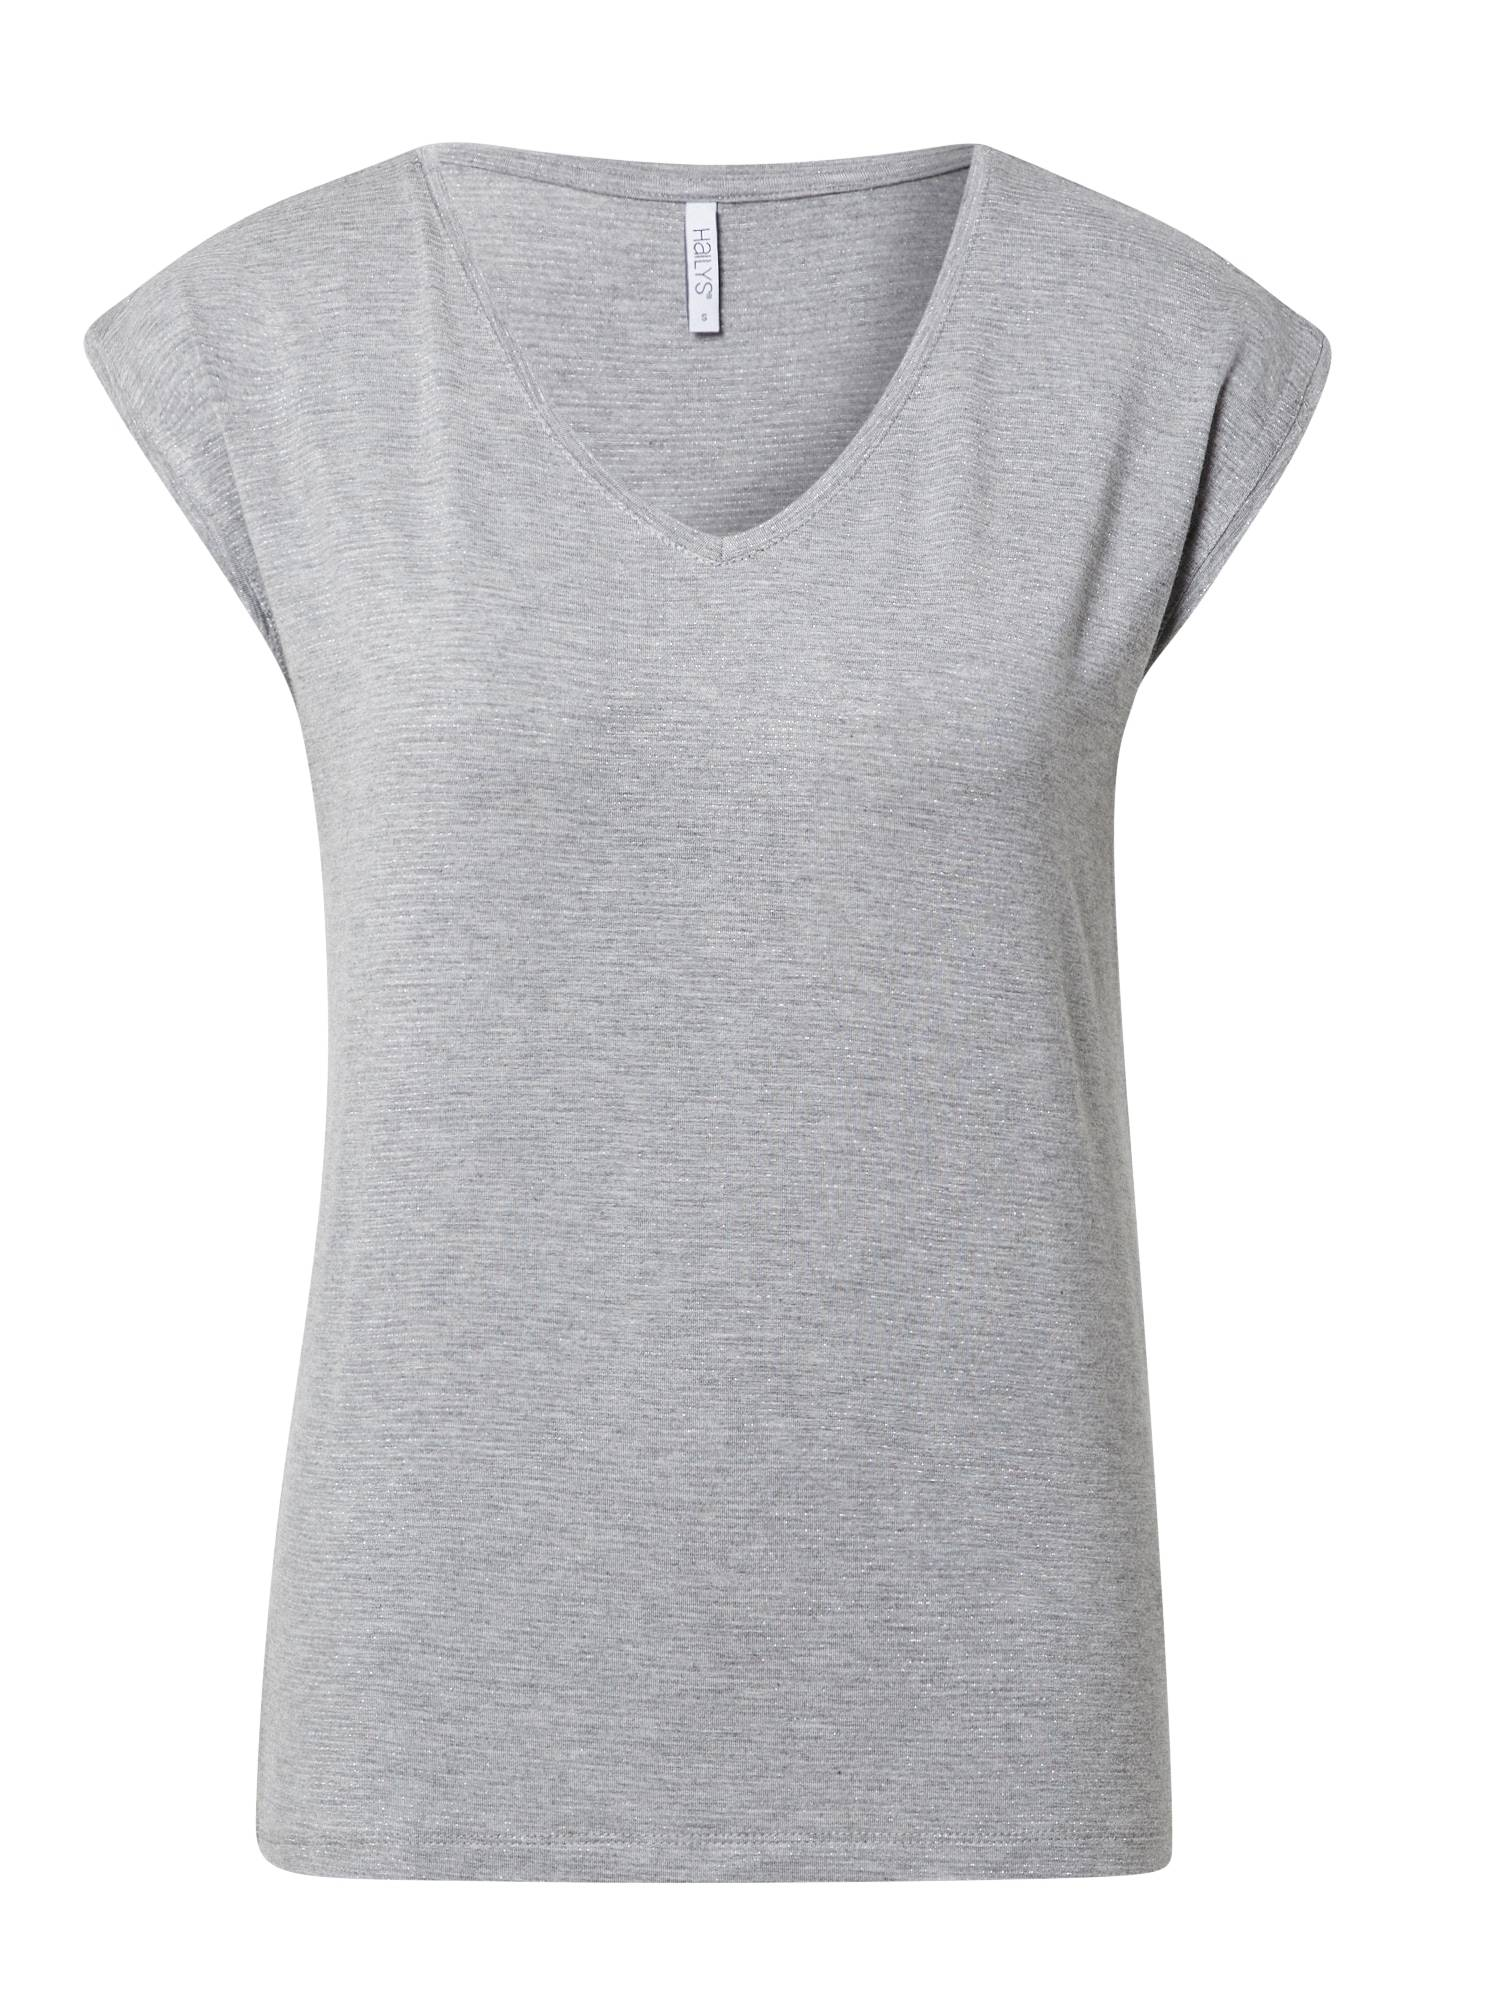 Hailys T-shirt 'TP Luxe'  - Gris - Taille: XXL - female